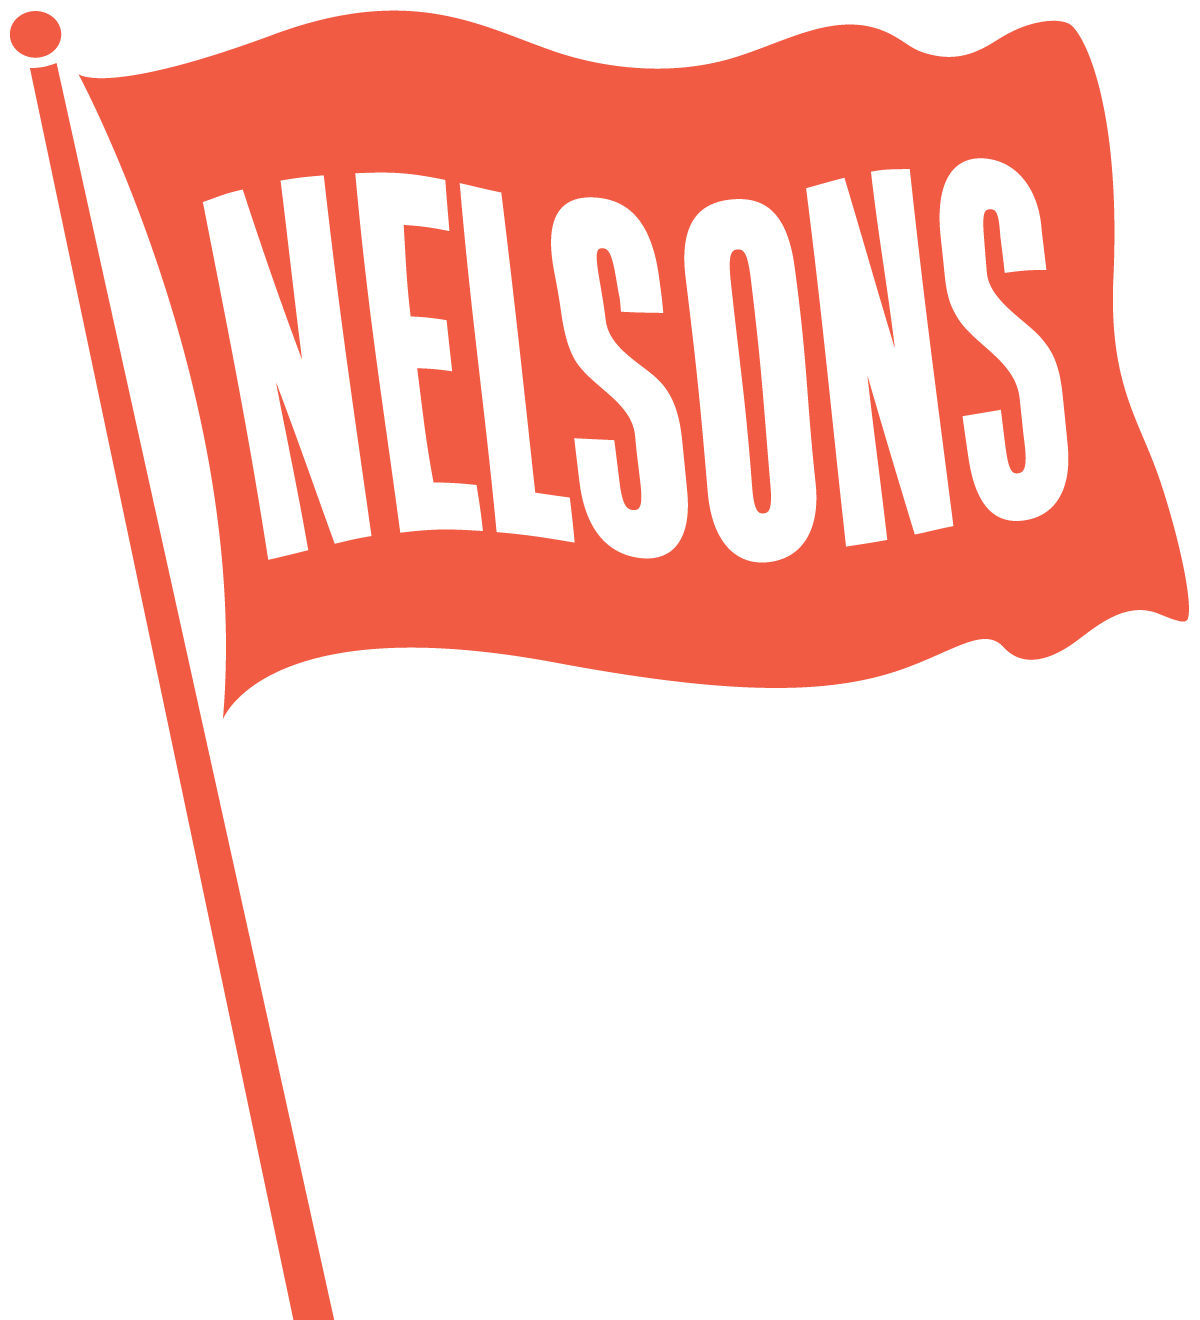 nelsons14